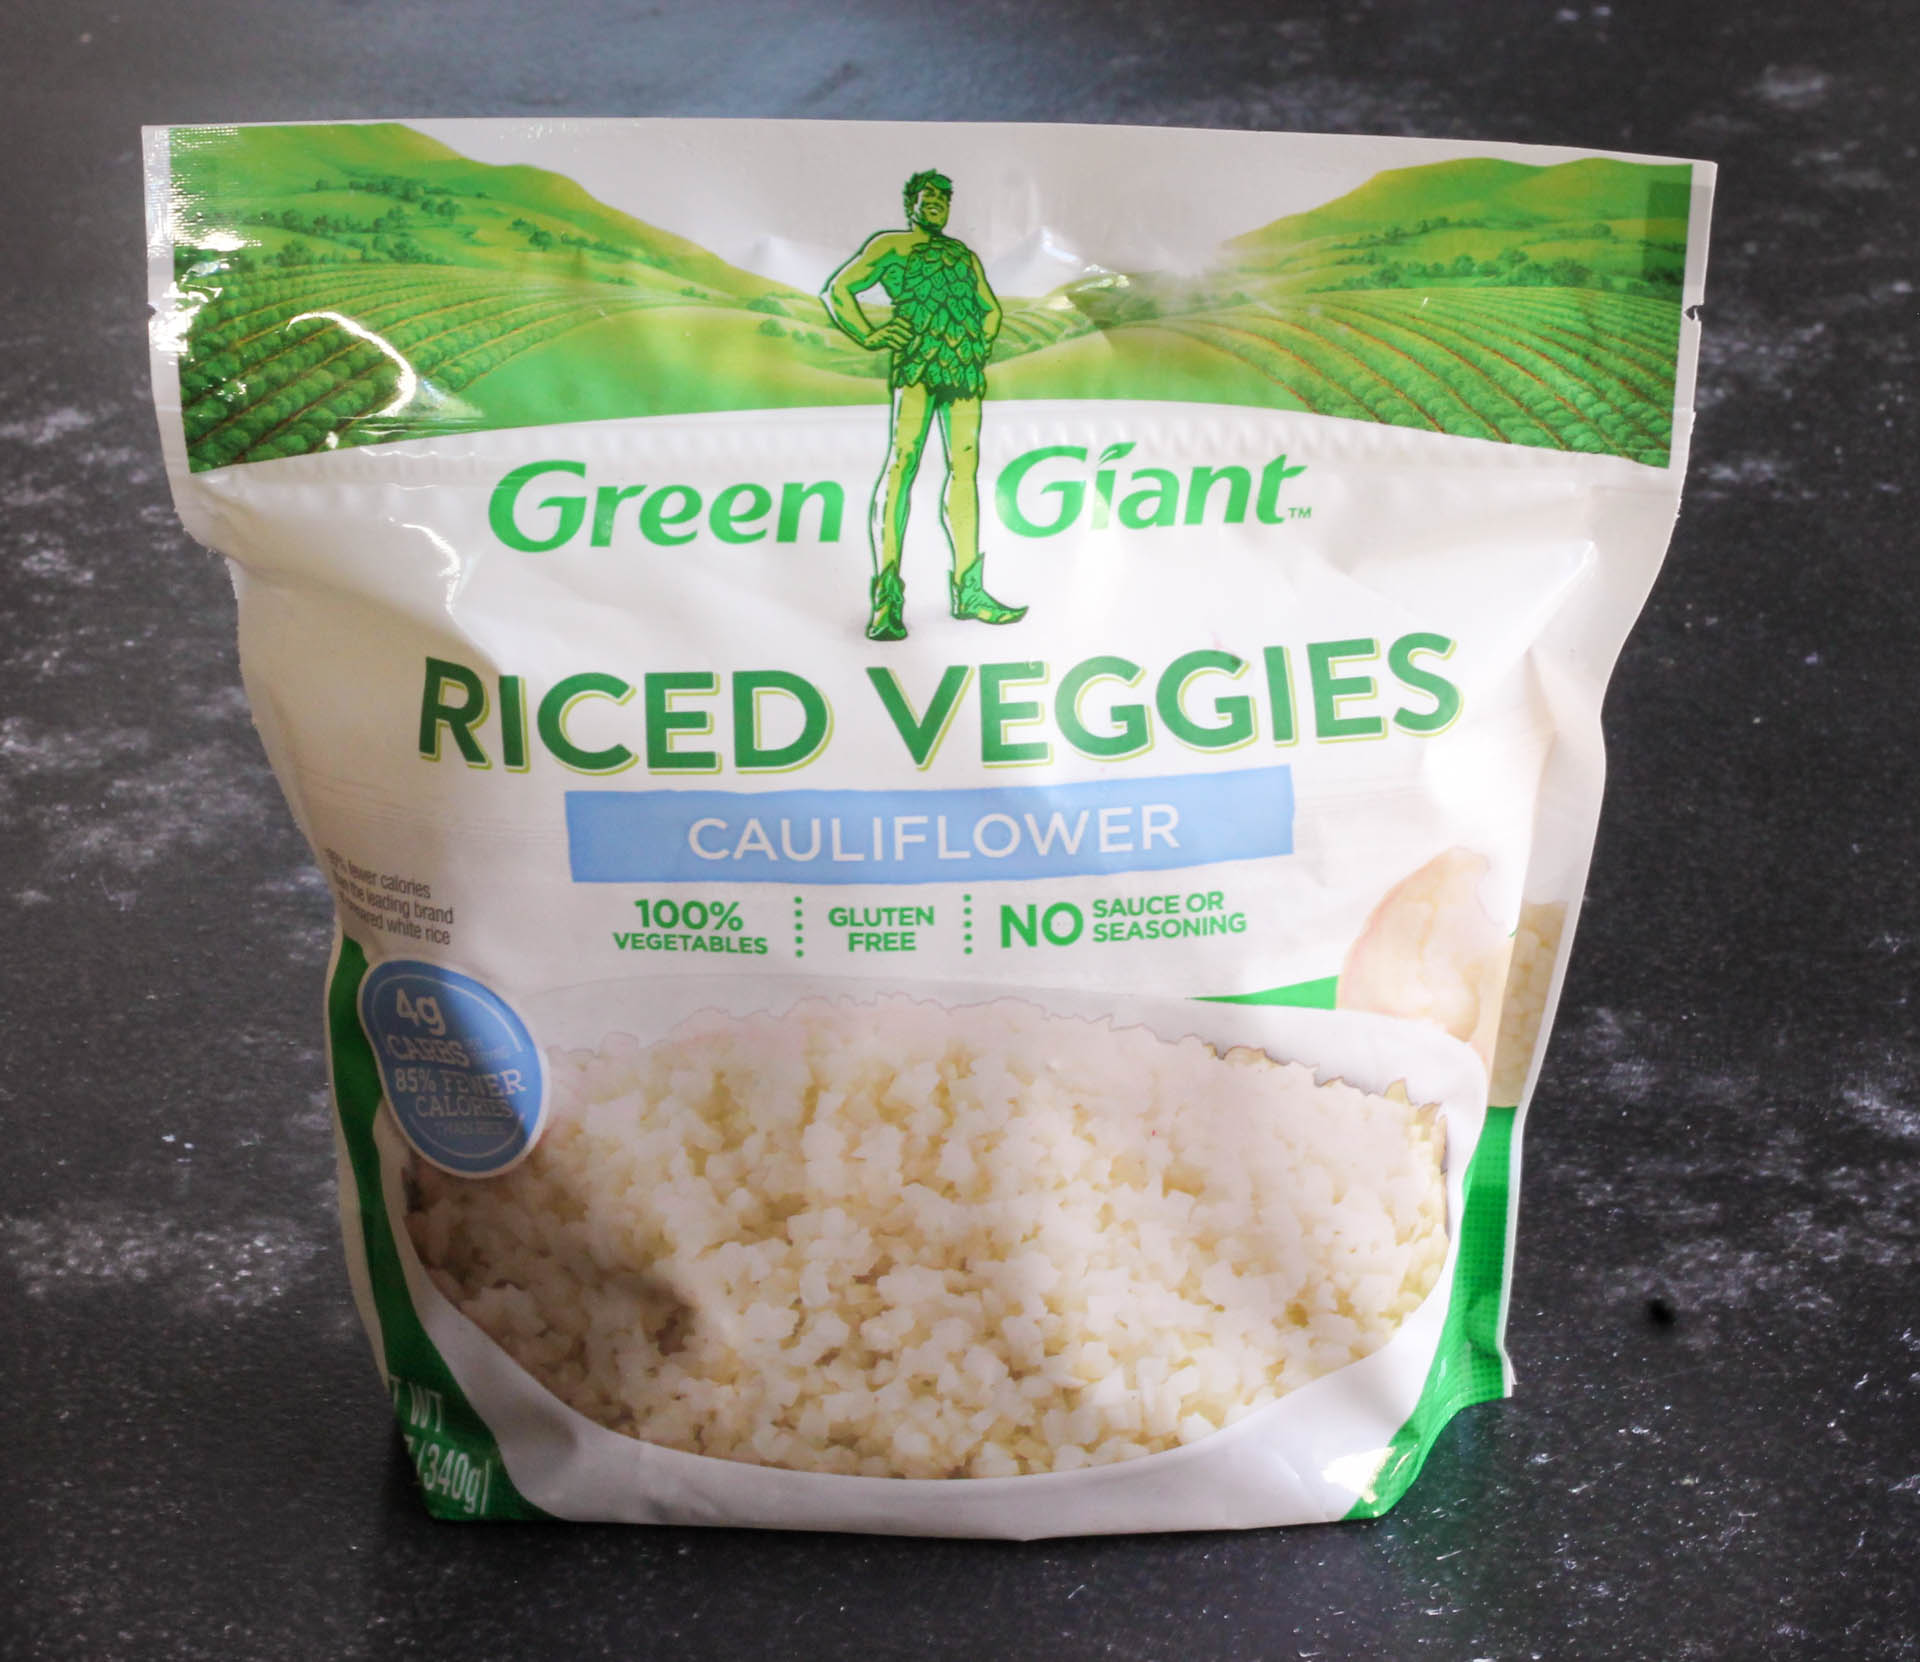 Green Giant Riced Veggies package